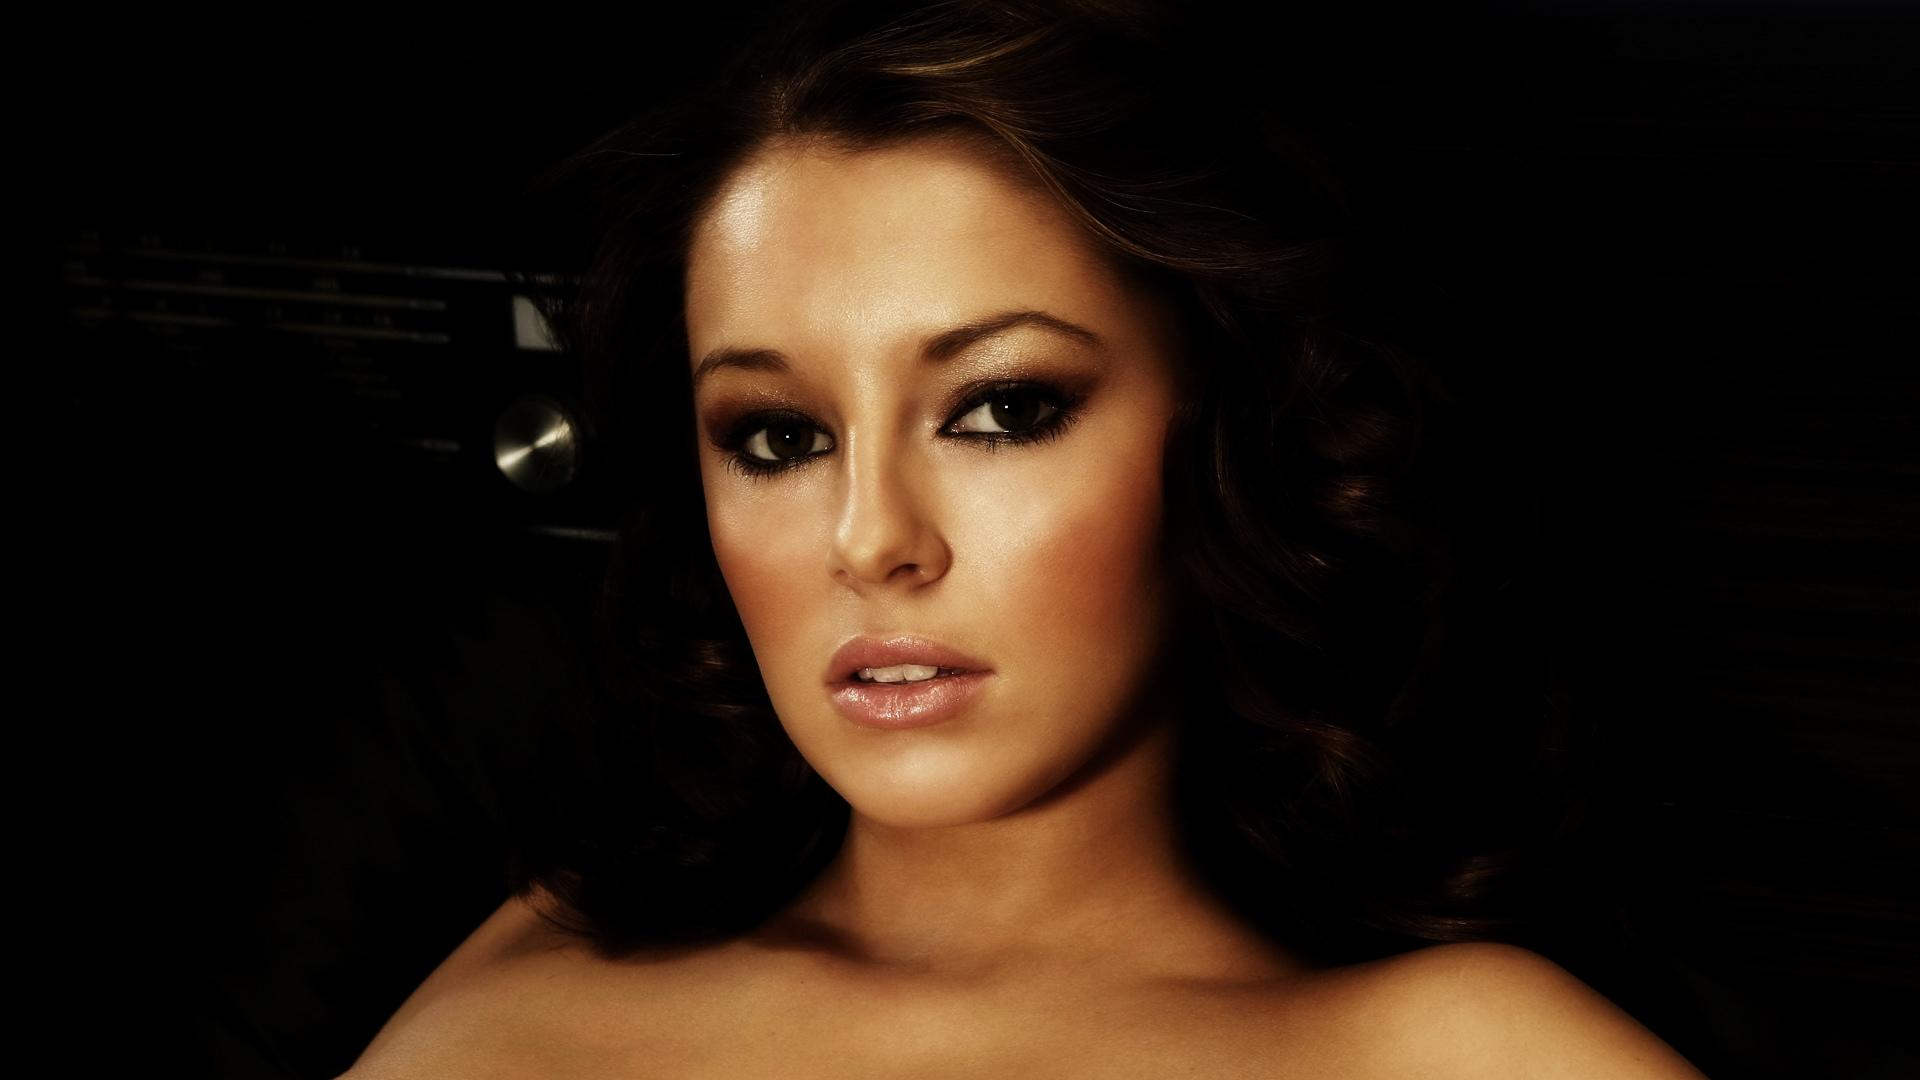 Keeley Hazell at 640 x 1136 iPhone 5 size wallpapers HD quality